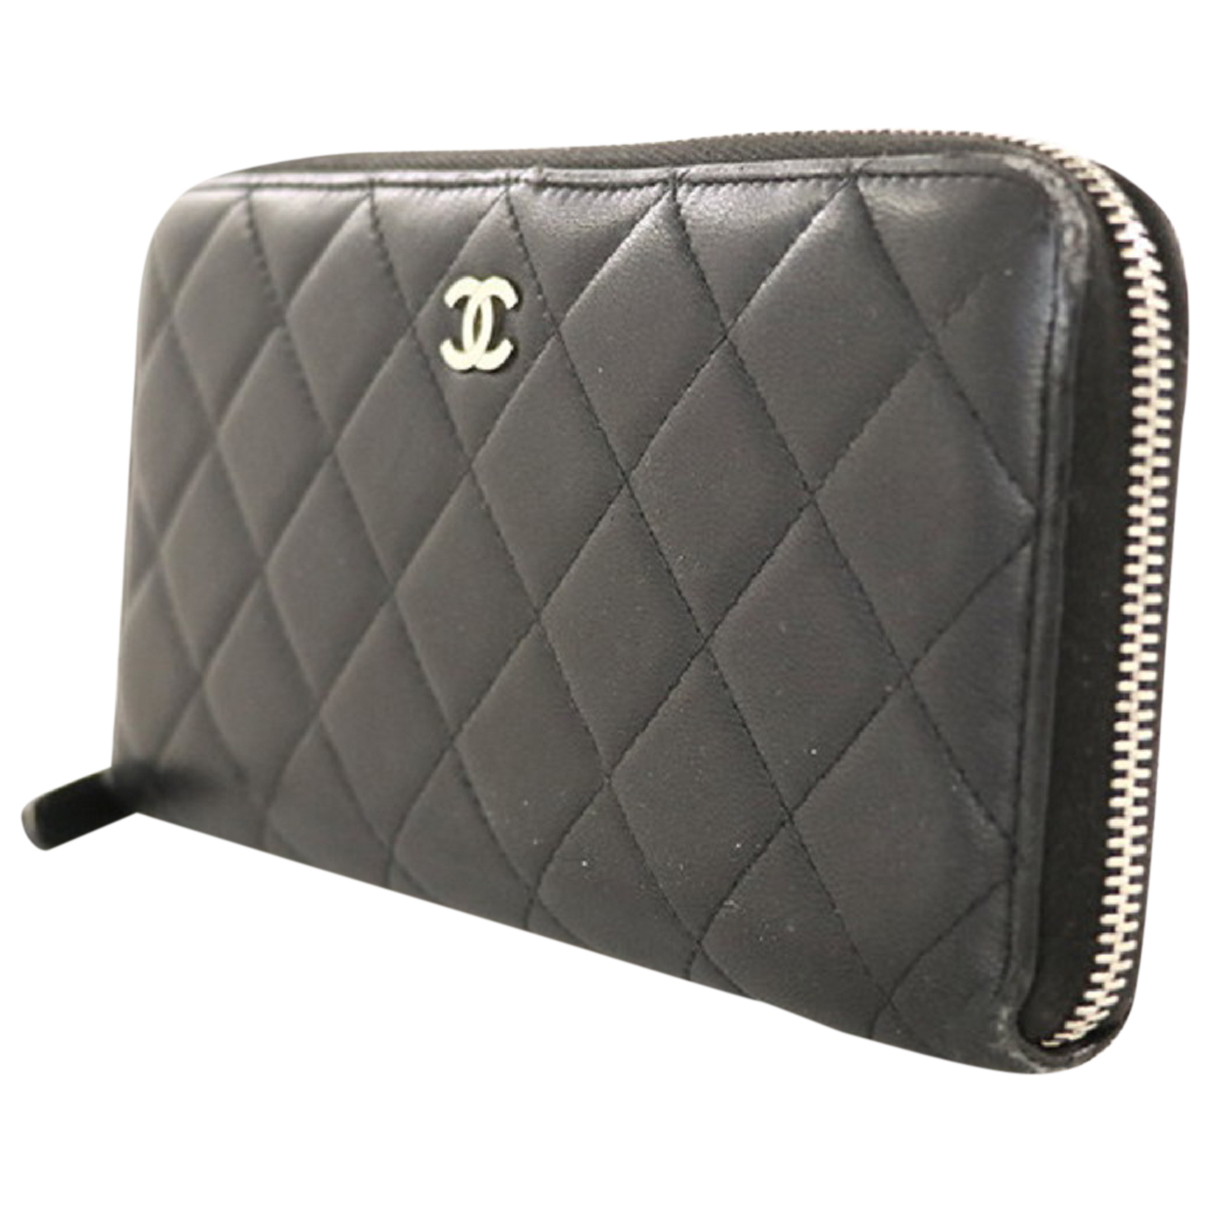 Chanel N Fur wallet for Women N